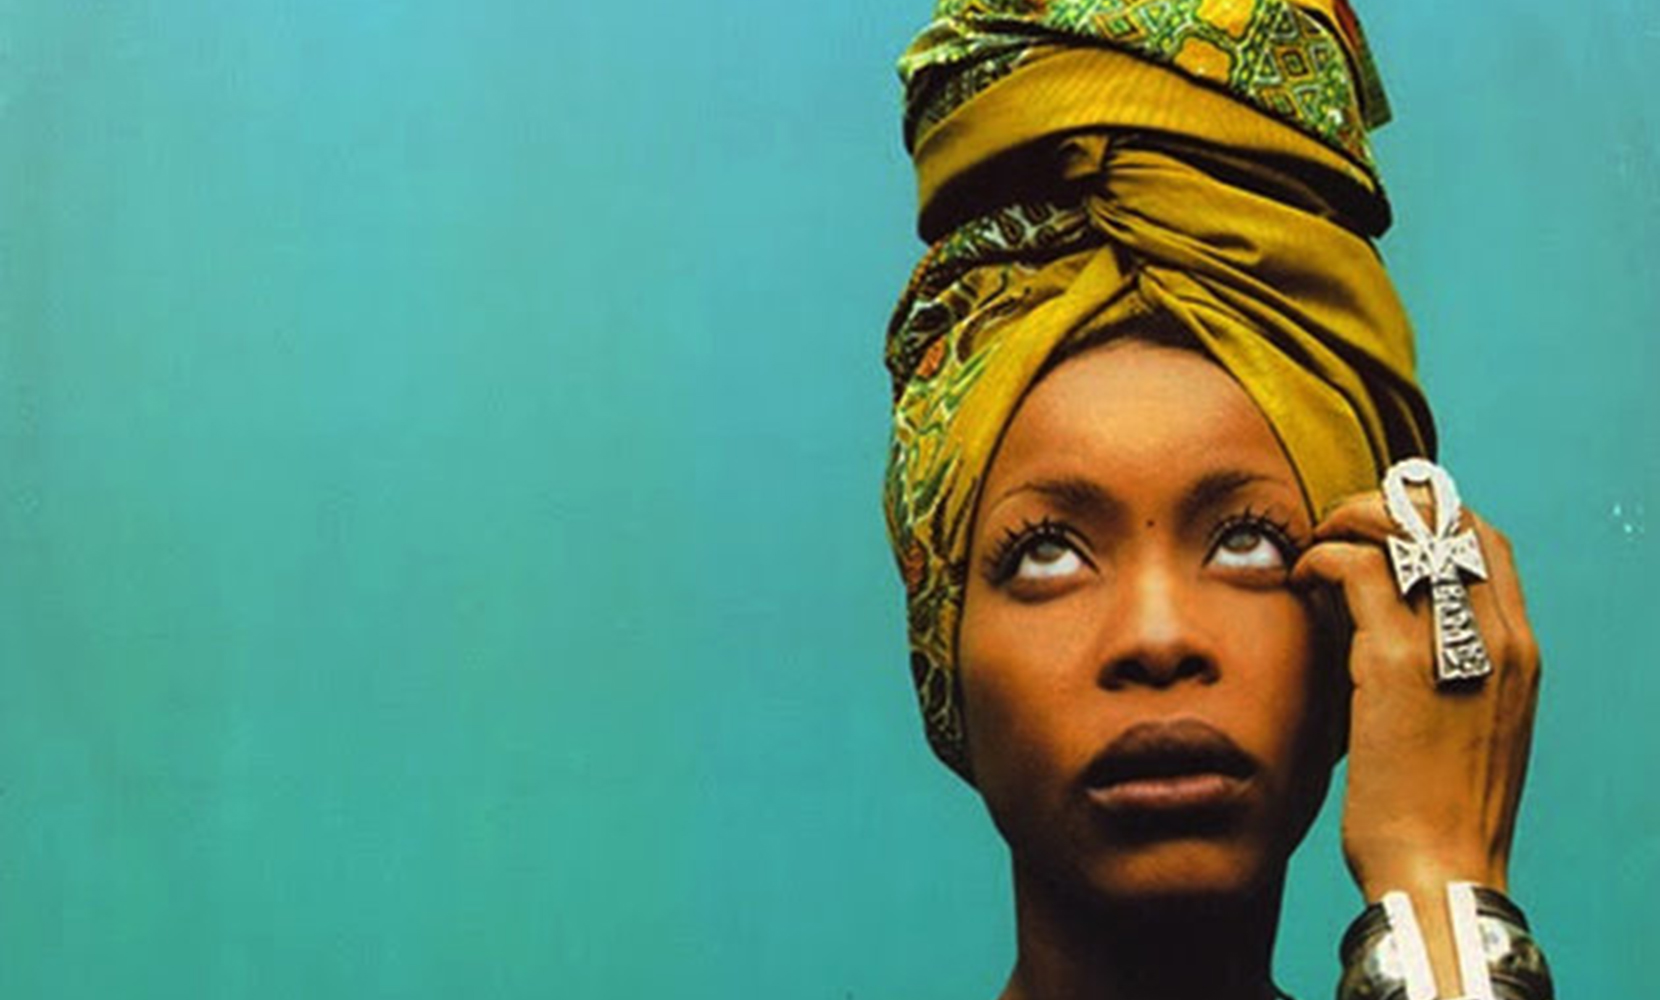 Erykah Badu discusses the real 'Ms. Jackson' and her thoughts on the Outkast track